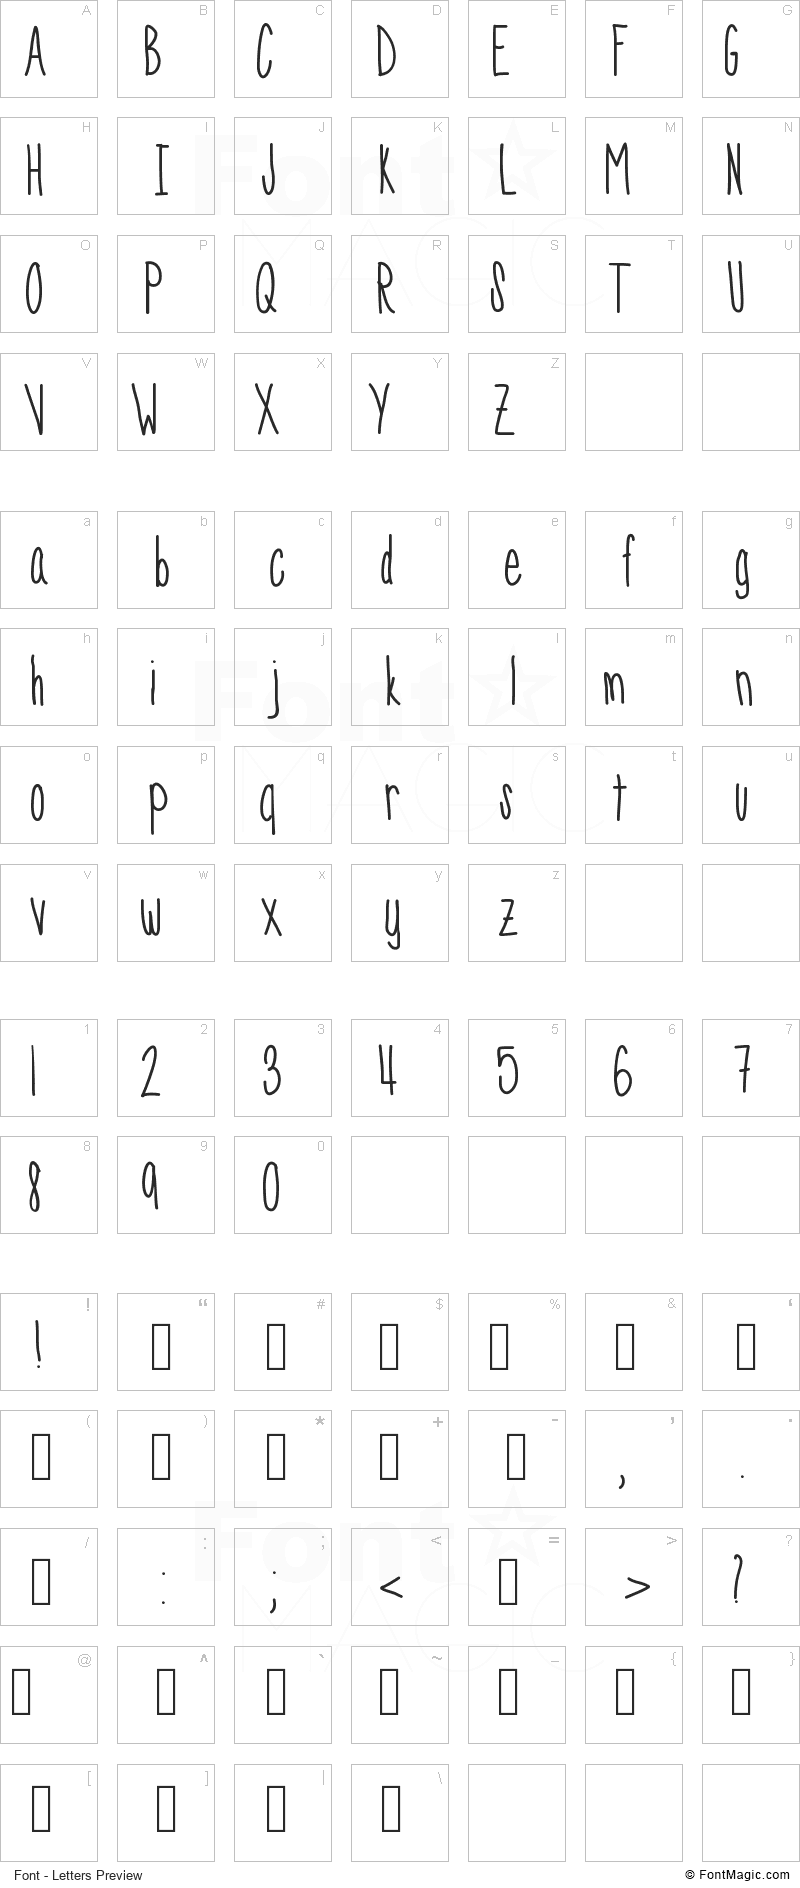 SkinnyNess Font - All Latters Preview Chart